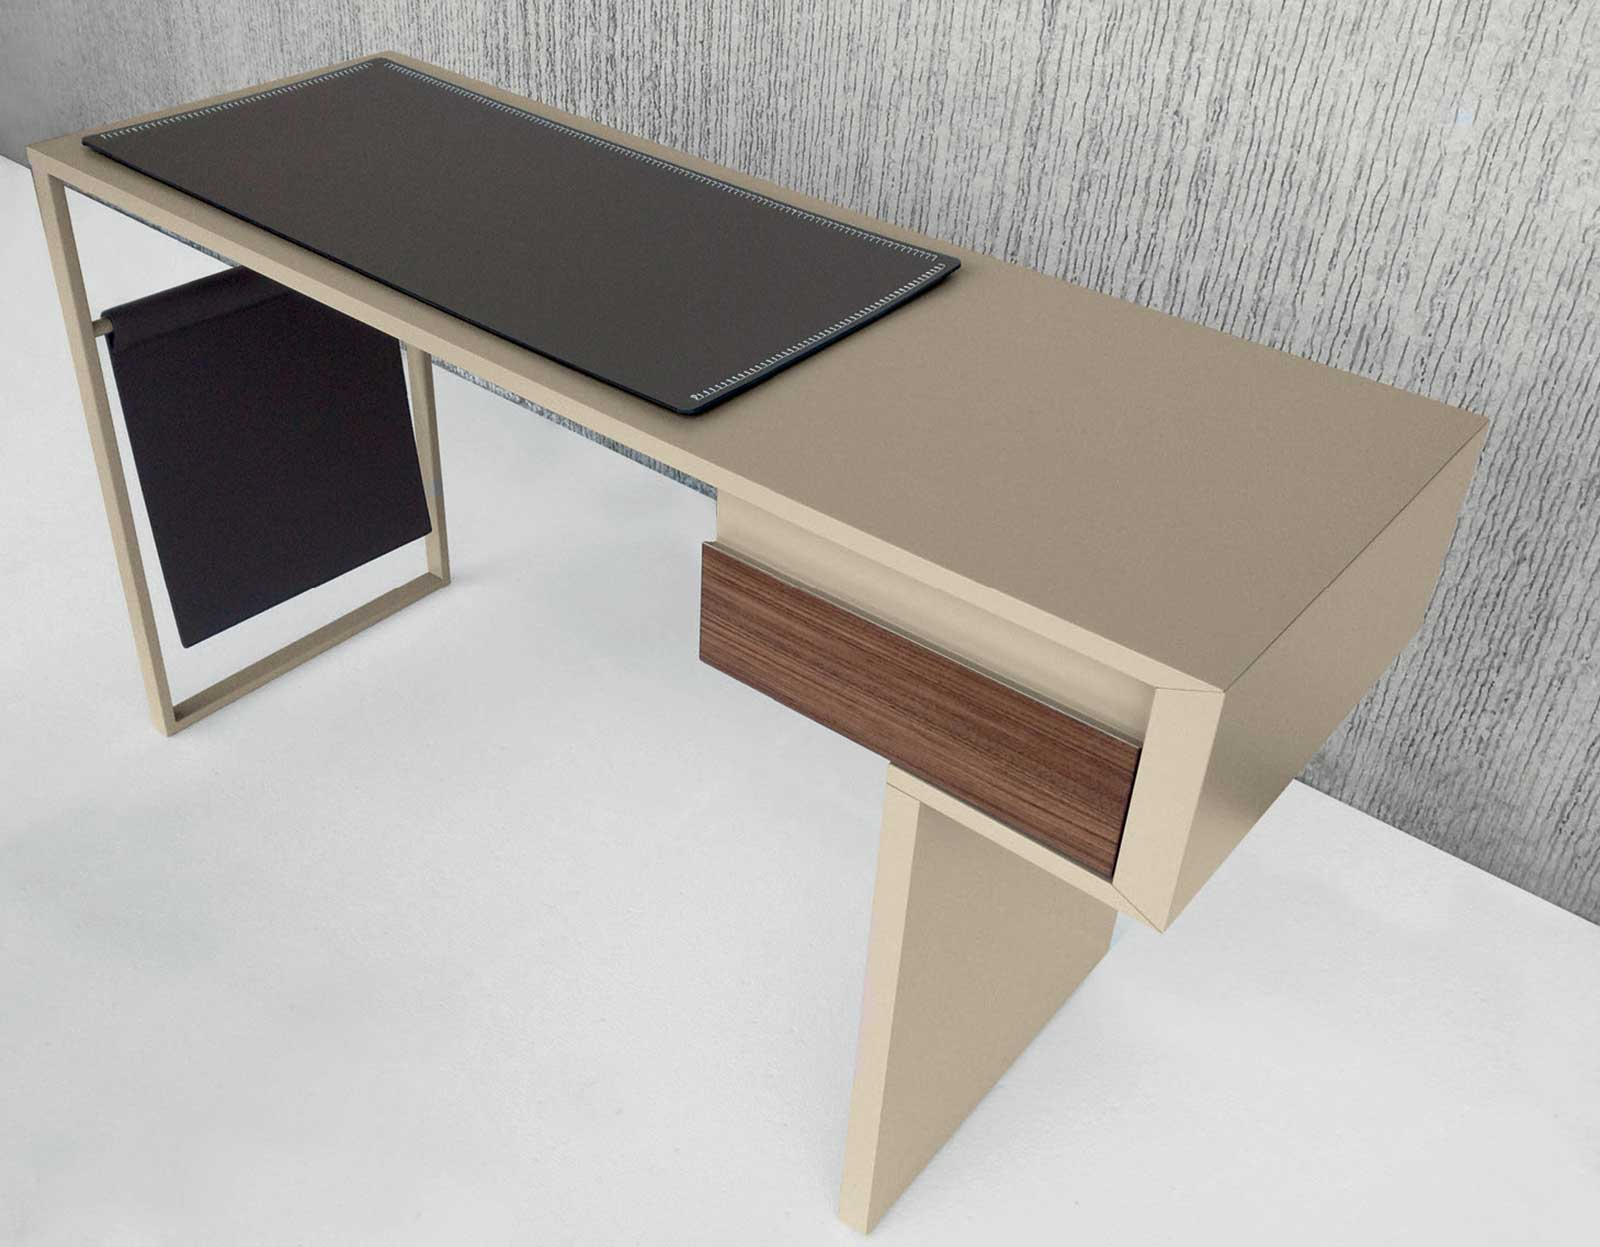 Bureau bois design vente en ligne italy dream design